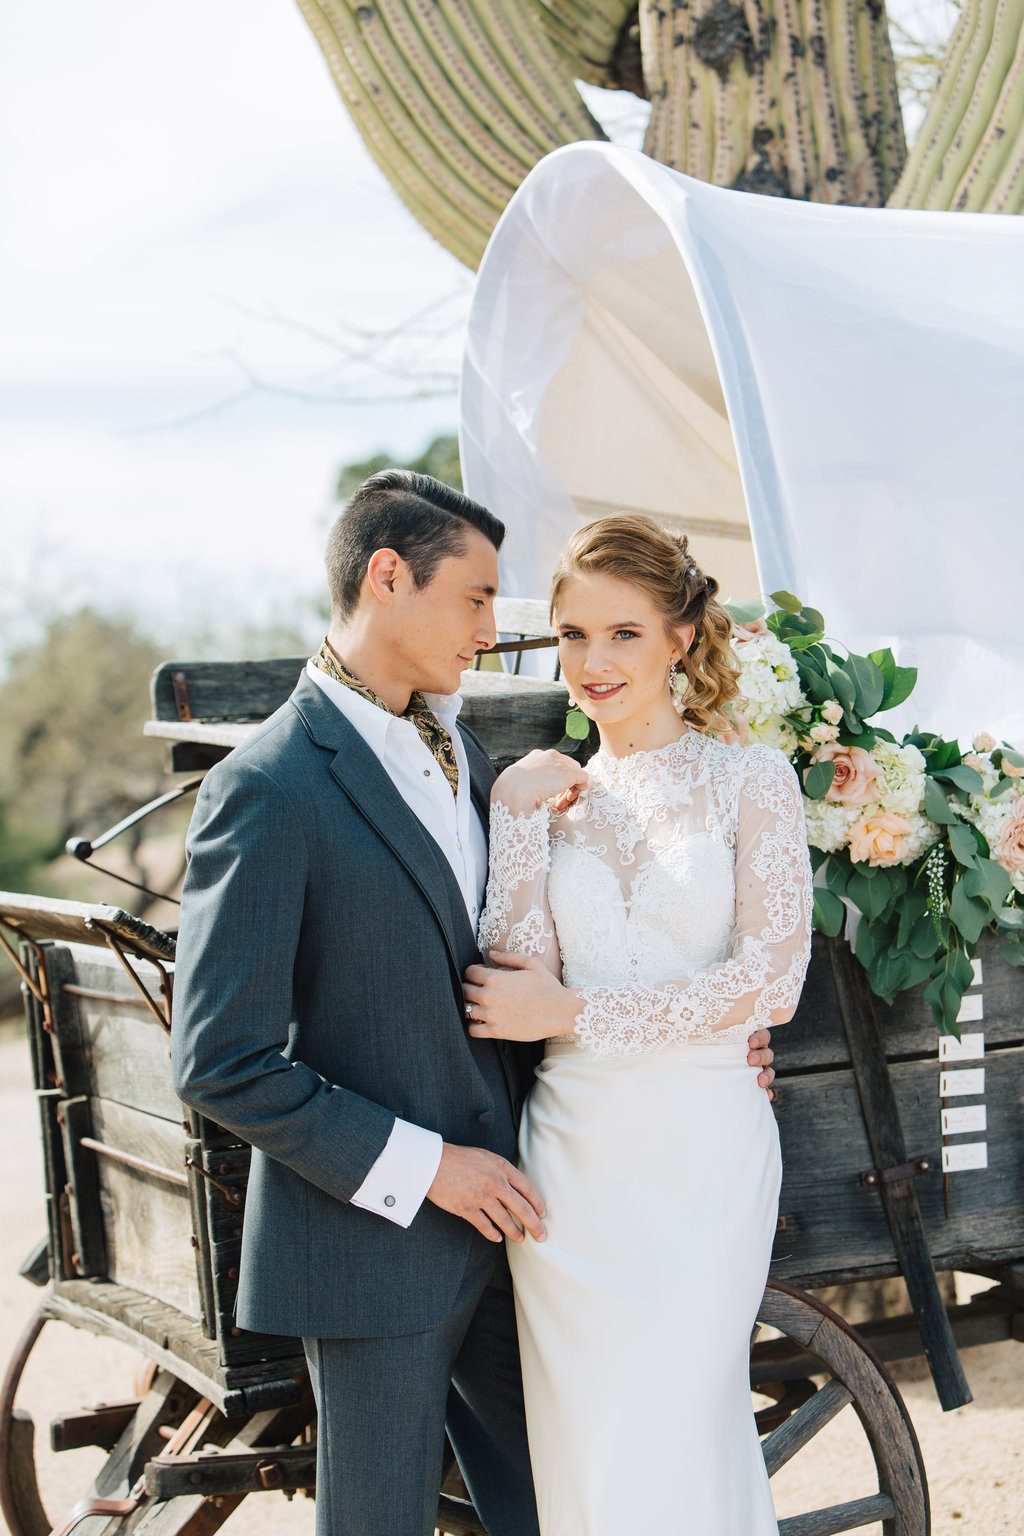 Bride, Groom, Phoenix Scottsdale Arizona Wedding Planner, Bridal gown, lace bridal gown, sleeved bridal gown, Groom attire, grey suite, southwest, ascot, groomsmen attire, Orchids, blush, peach, southwest, elegant, flowers, roses, rustic, western,  escort cards, wedding wagon